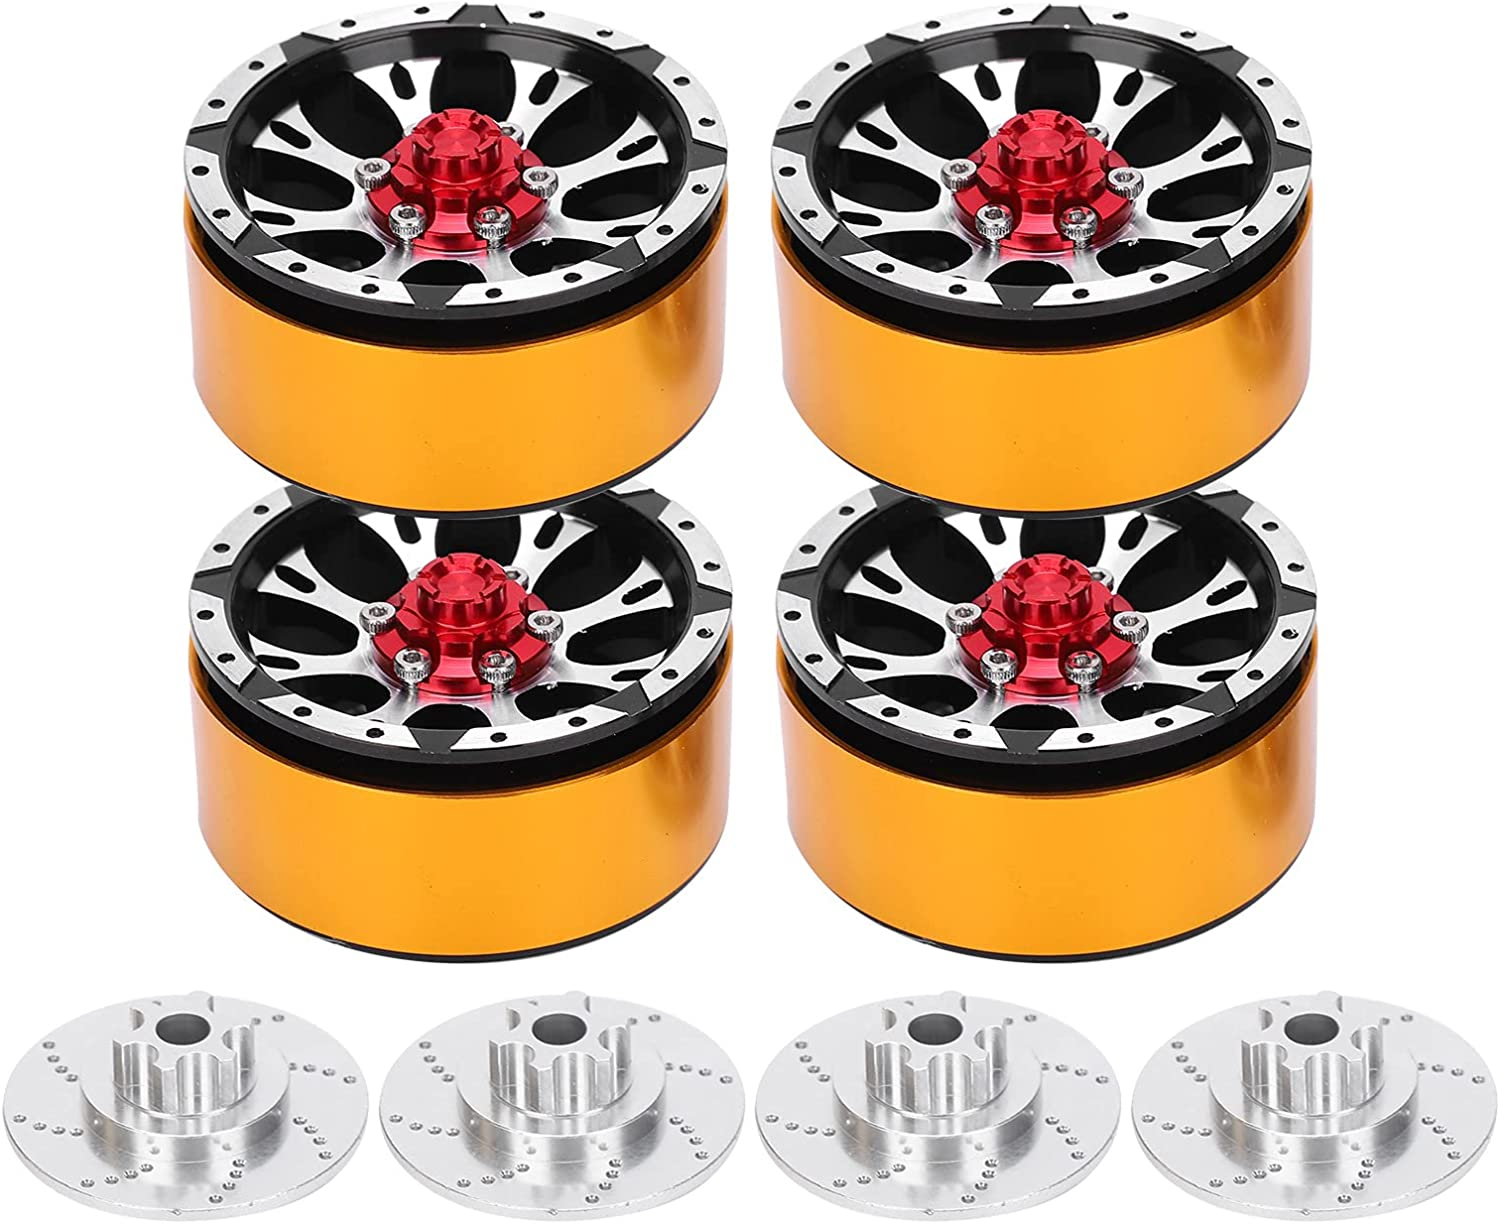 YUANJS Wheel Hubs 4Pcs 1.7in Metal with Limited price Sale SALE% OFF sale Decorativ RC